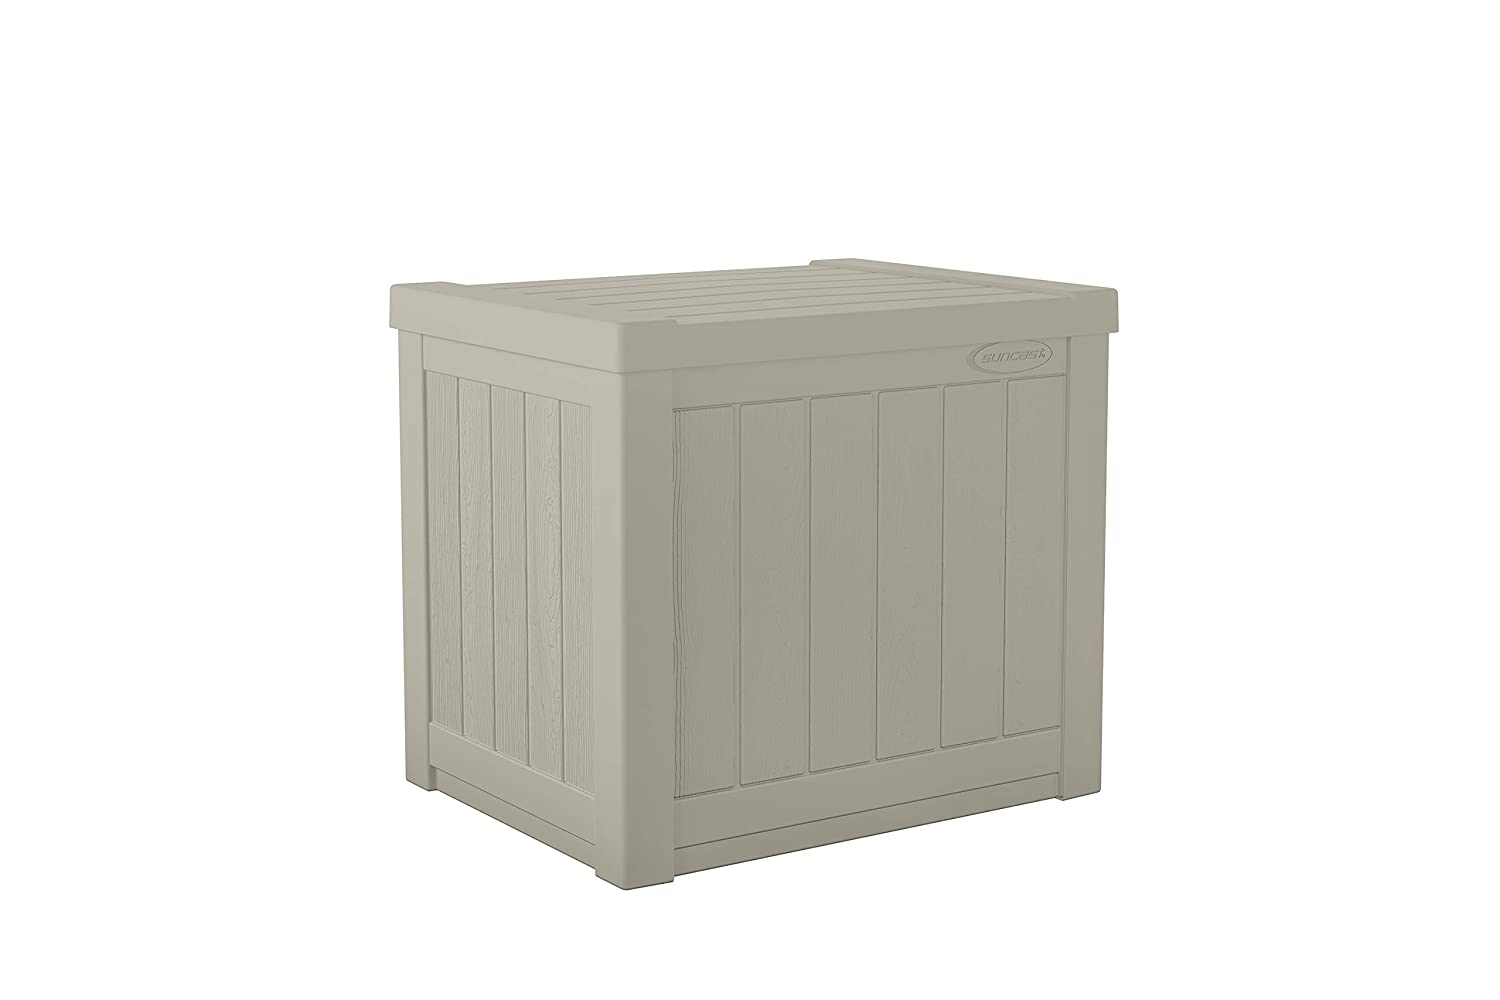 Suncast 22-Gallon Small Deck Box - Lightweight Resin Indoor/Outdoor Storage Container and Seat for Patio Cushions and Gardening Tools - Store Items on Patio, Garage, Yard - Light Taupe